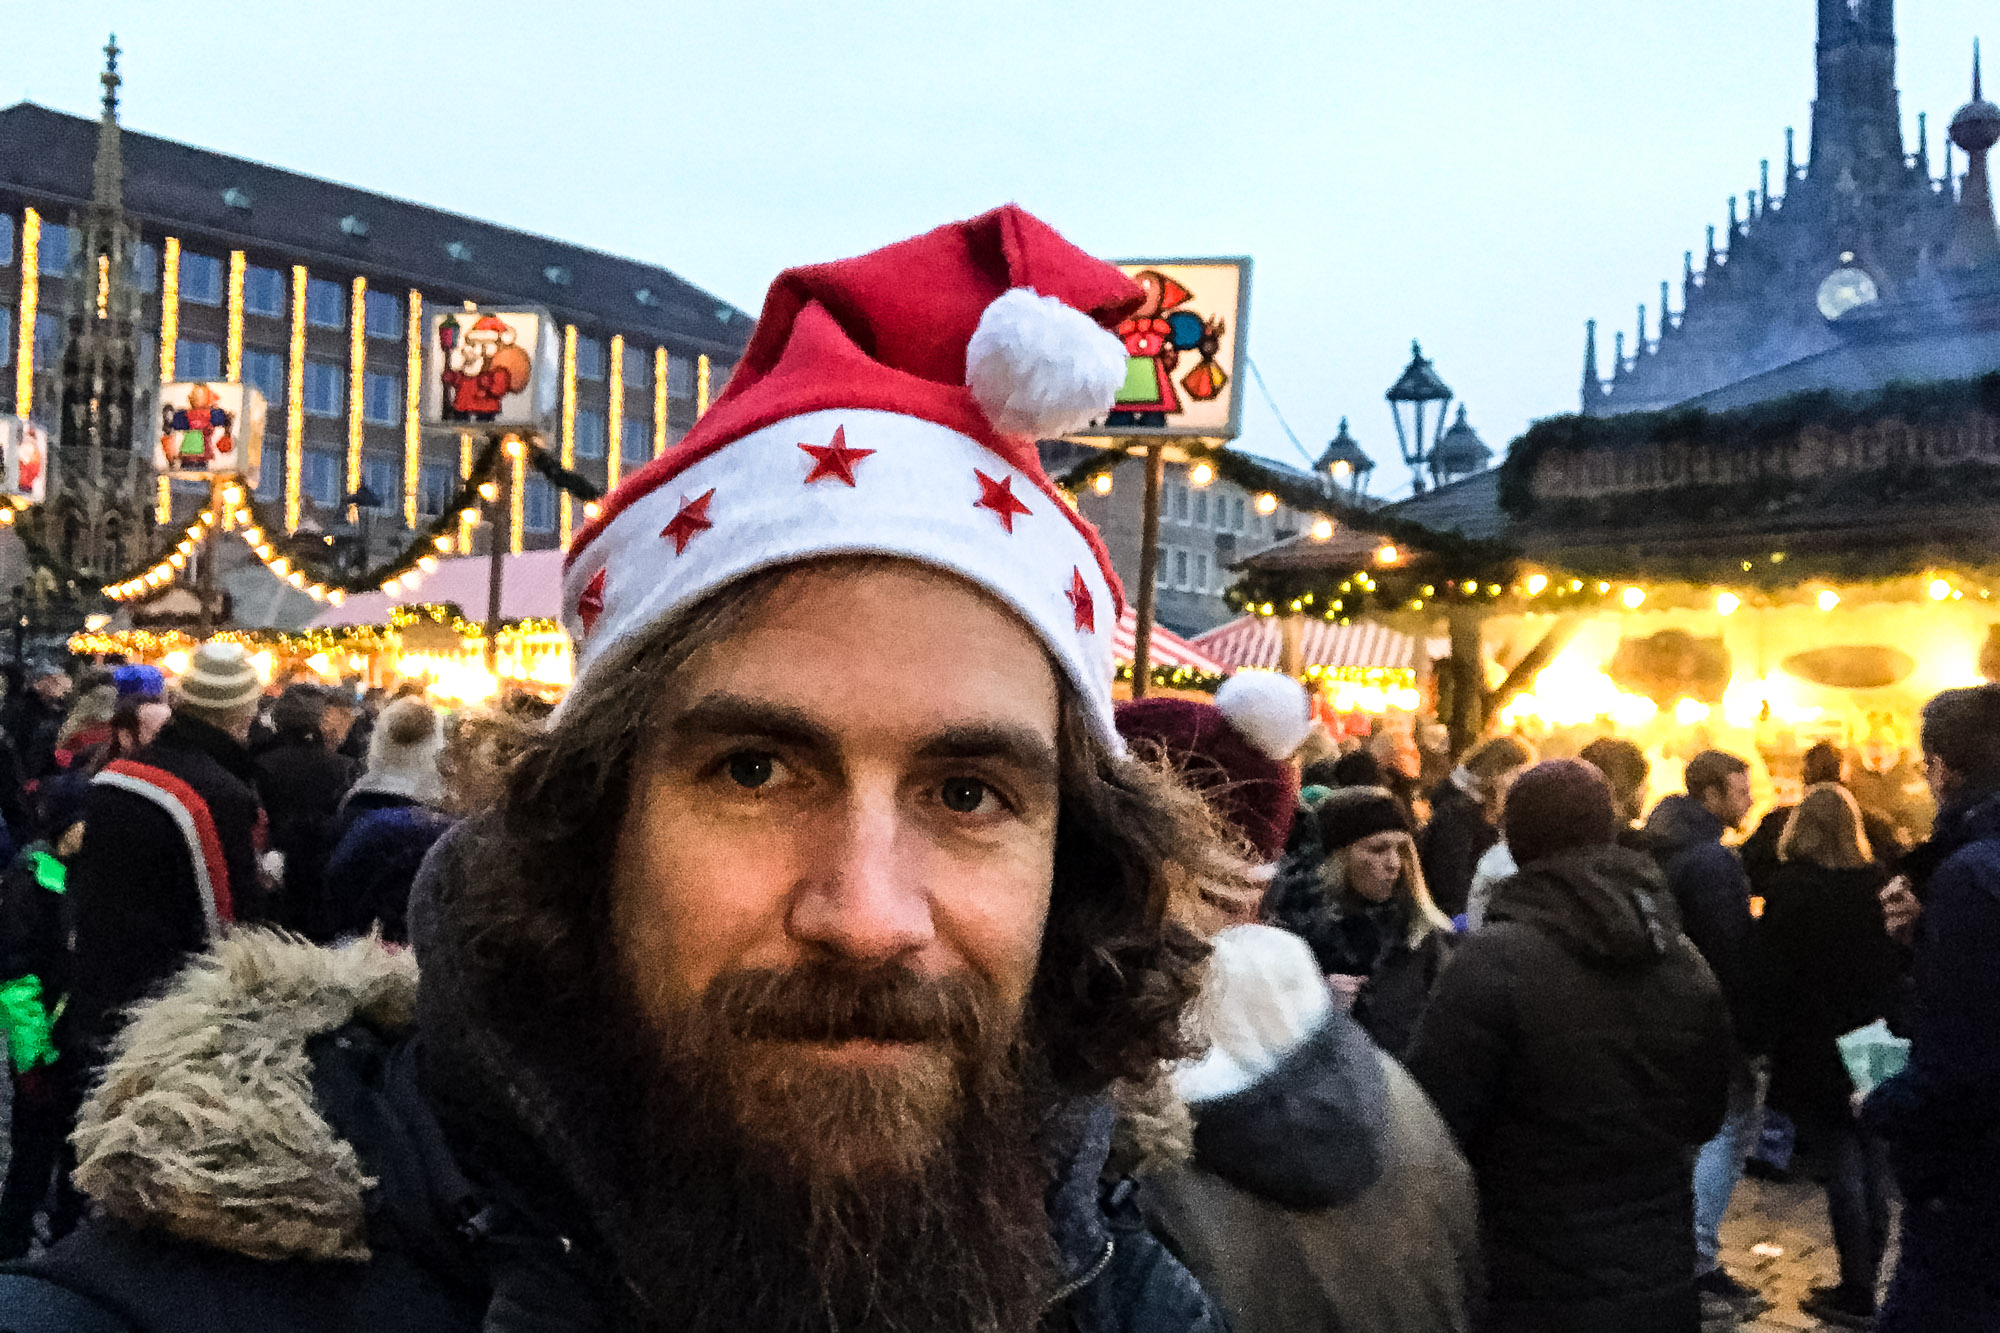 on the Nürnberg Christmas Market